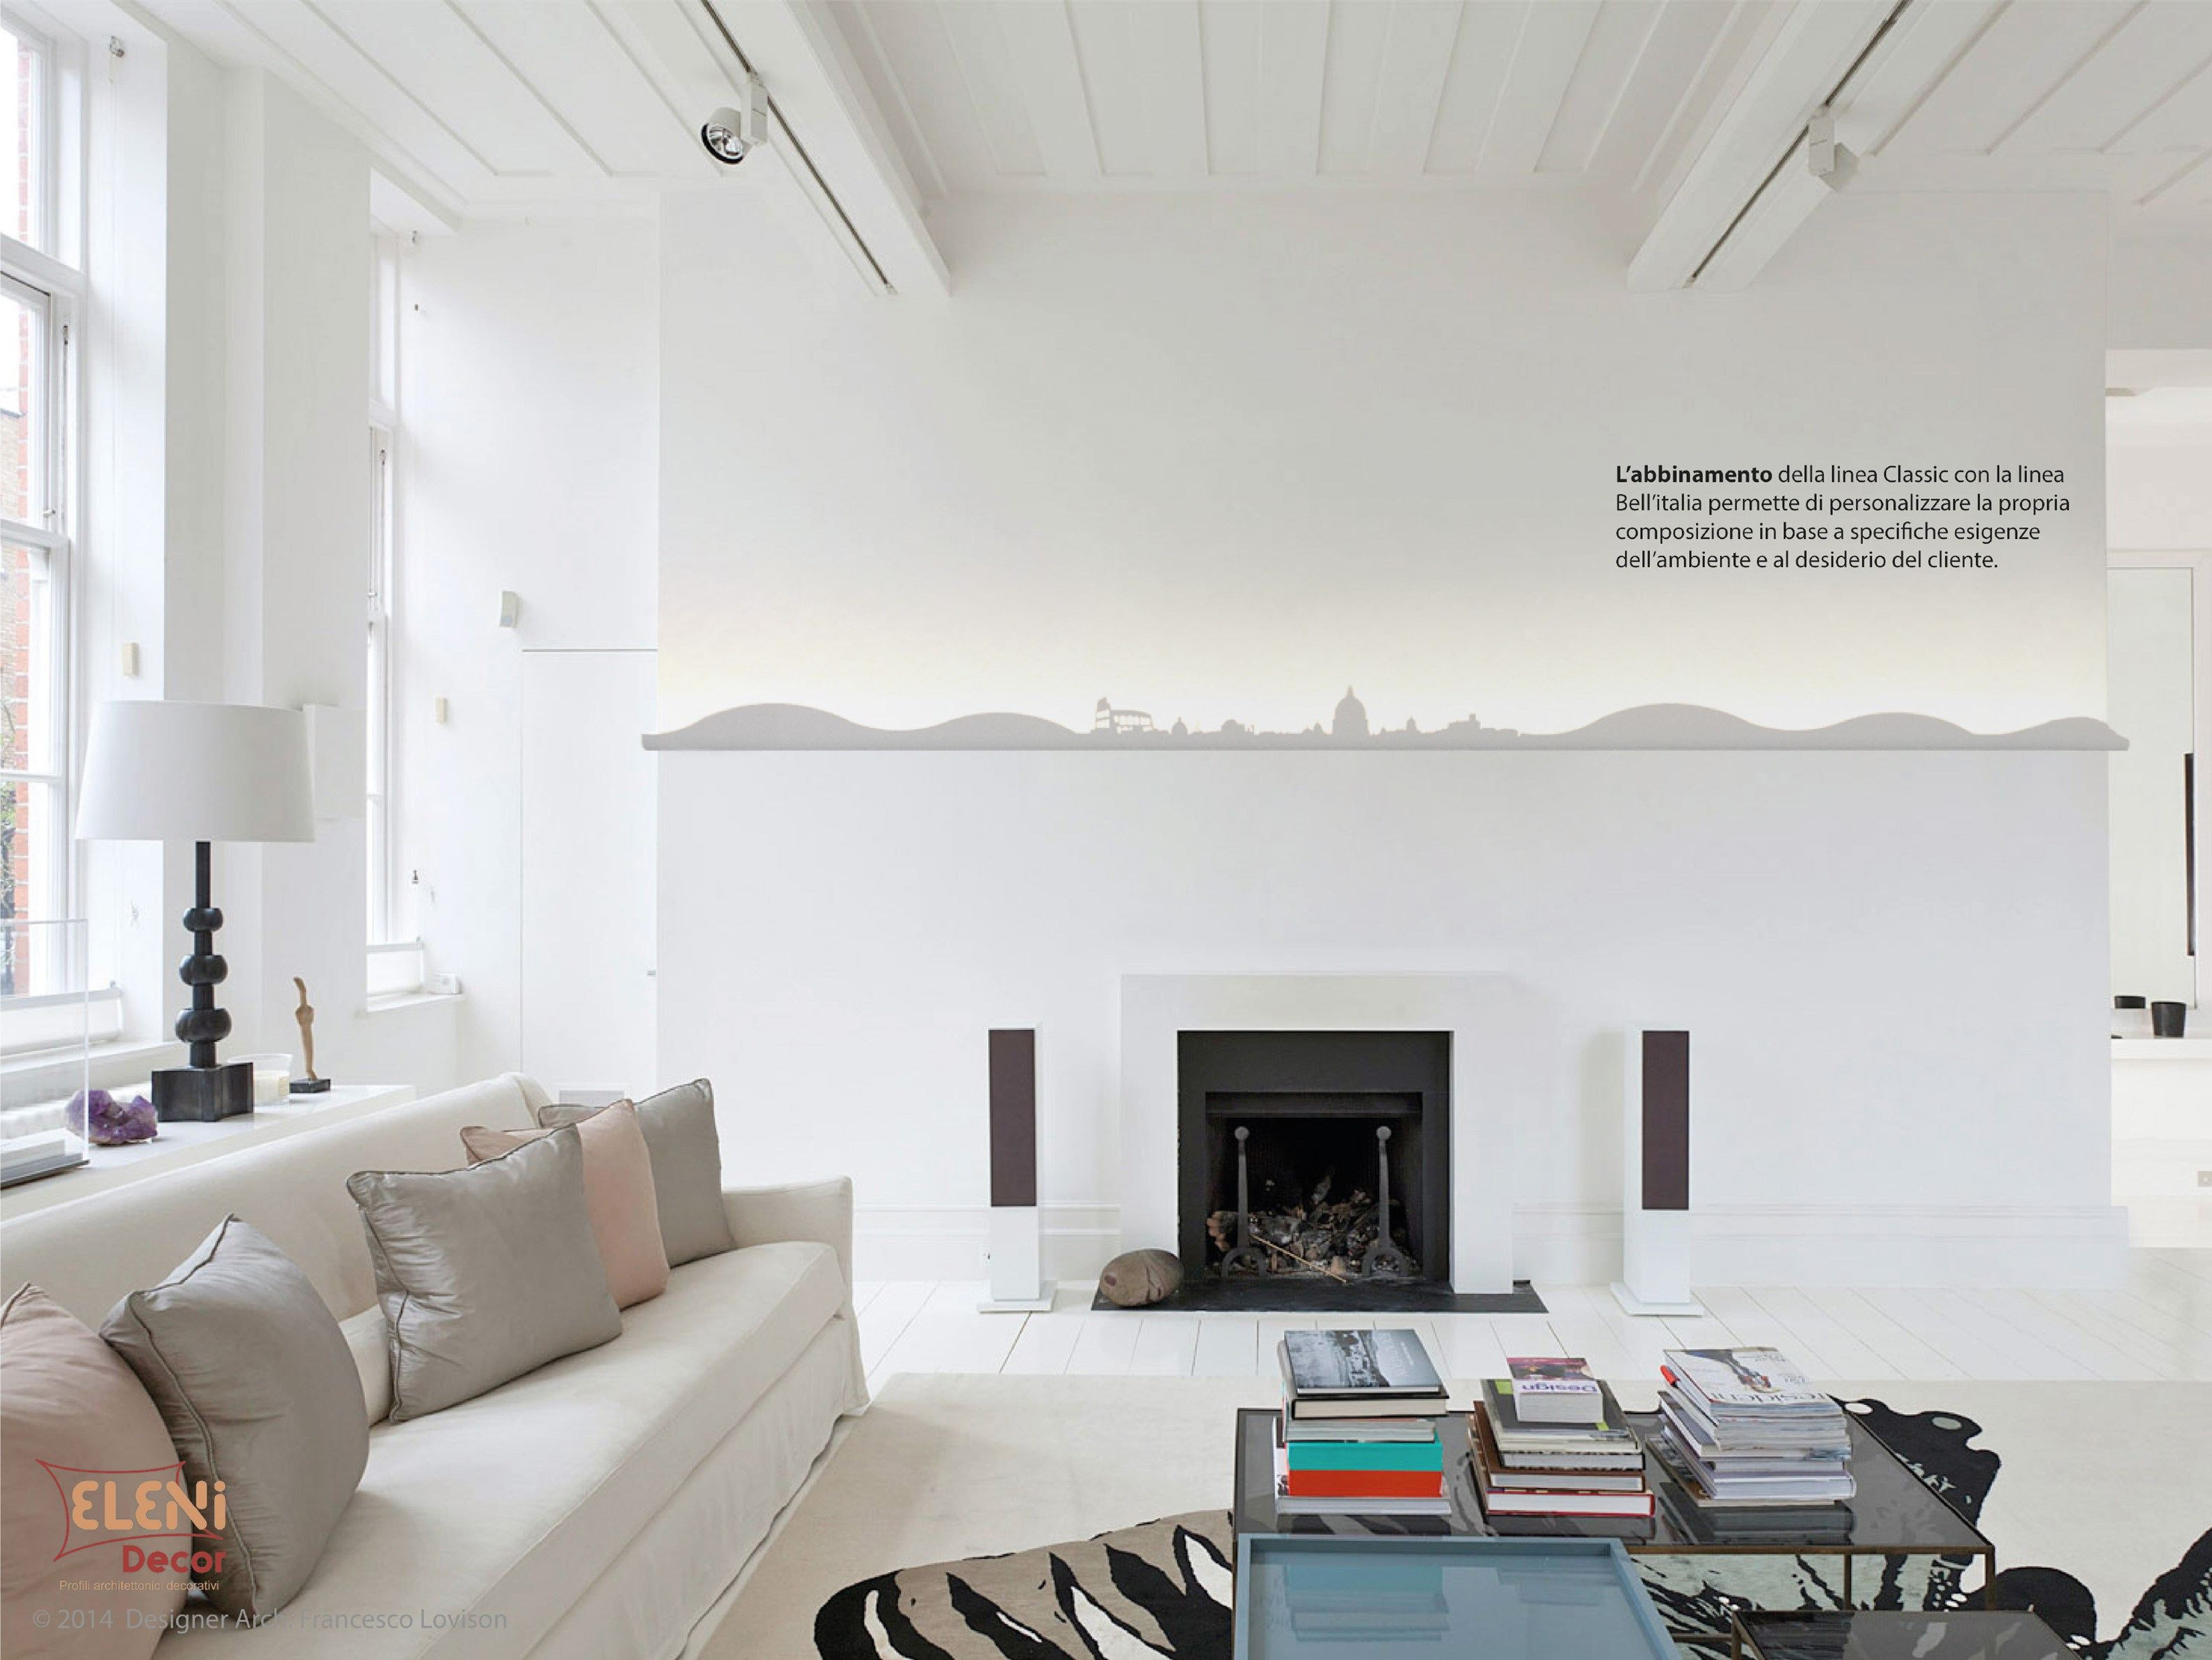 Decori Soffitto Gesso : Decori Soffitto Gesso: Colonne in gesso ...